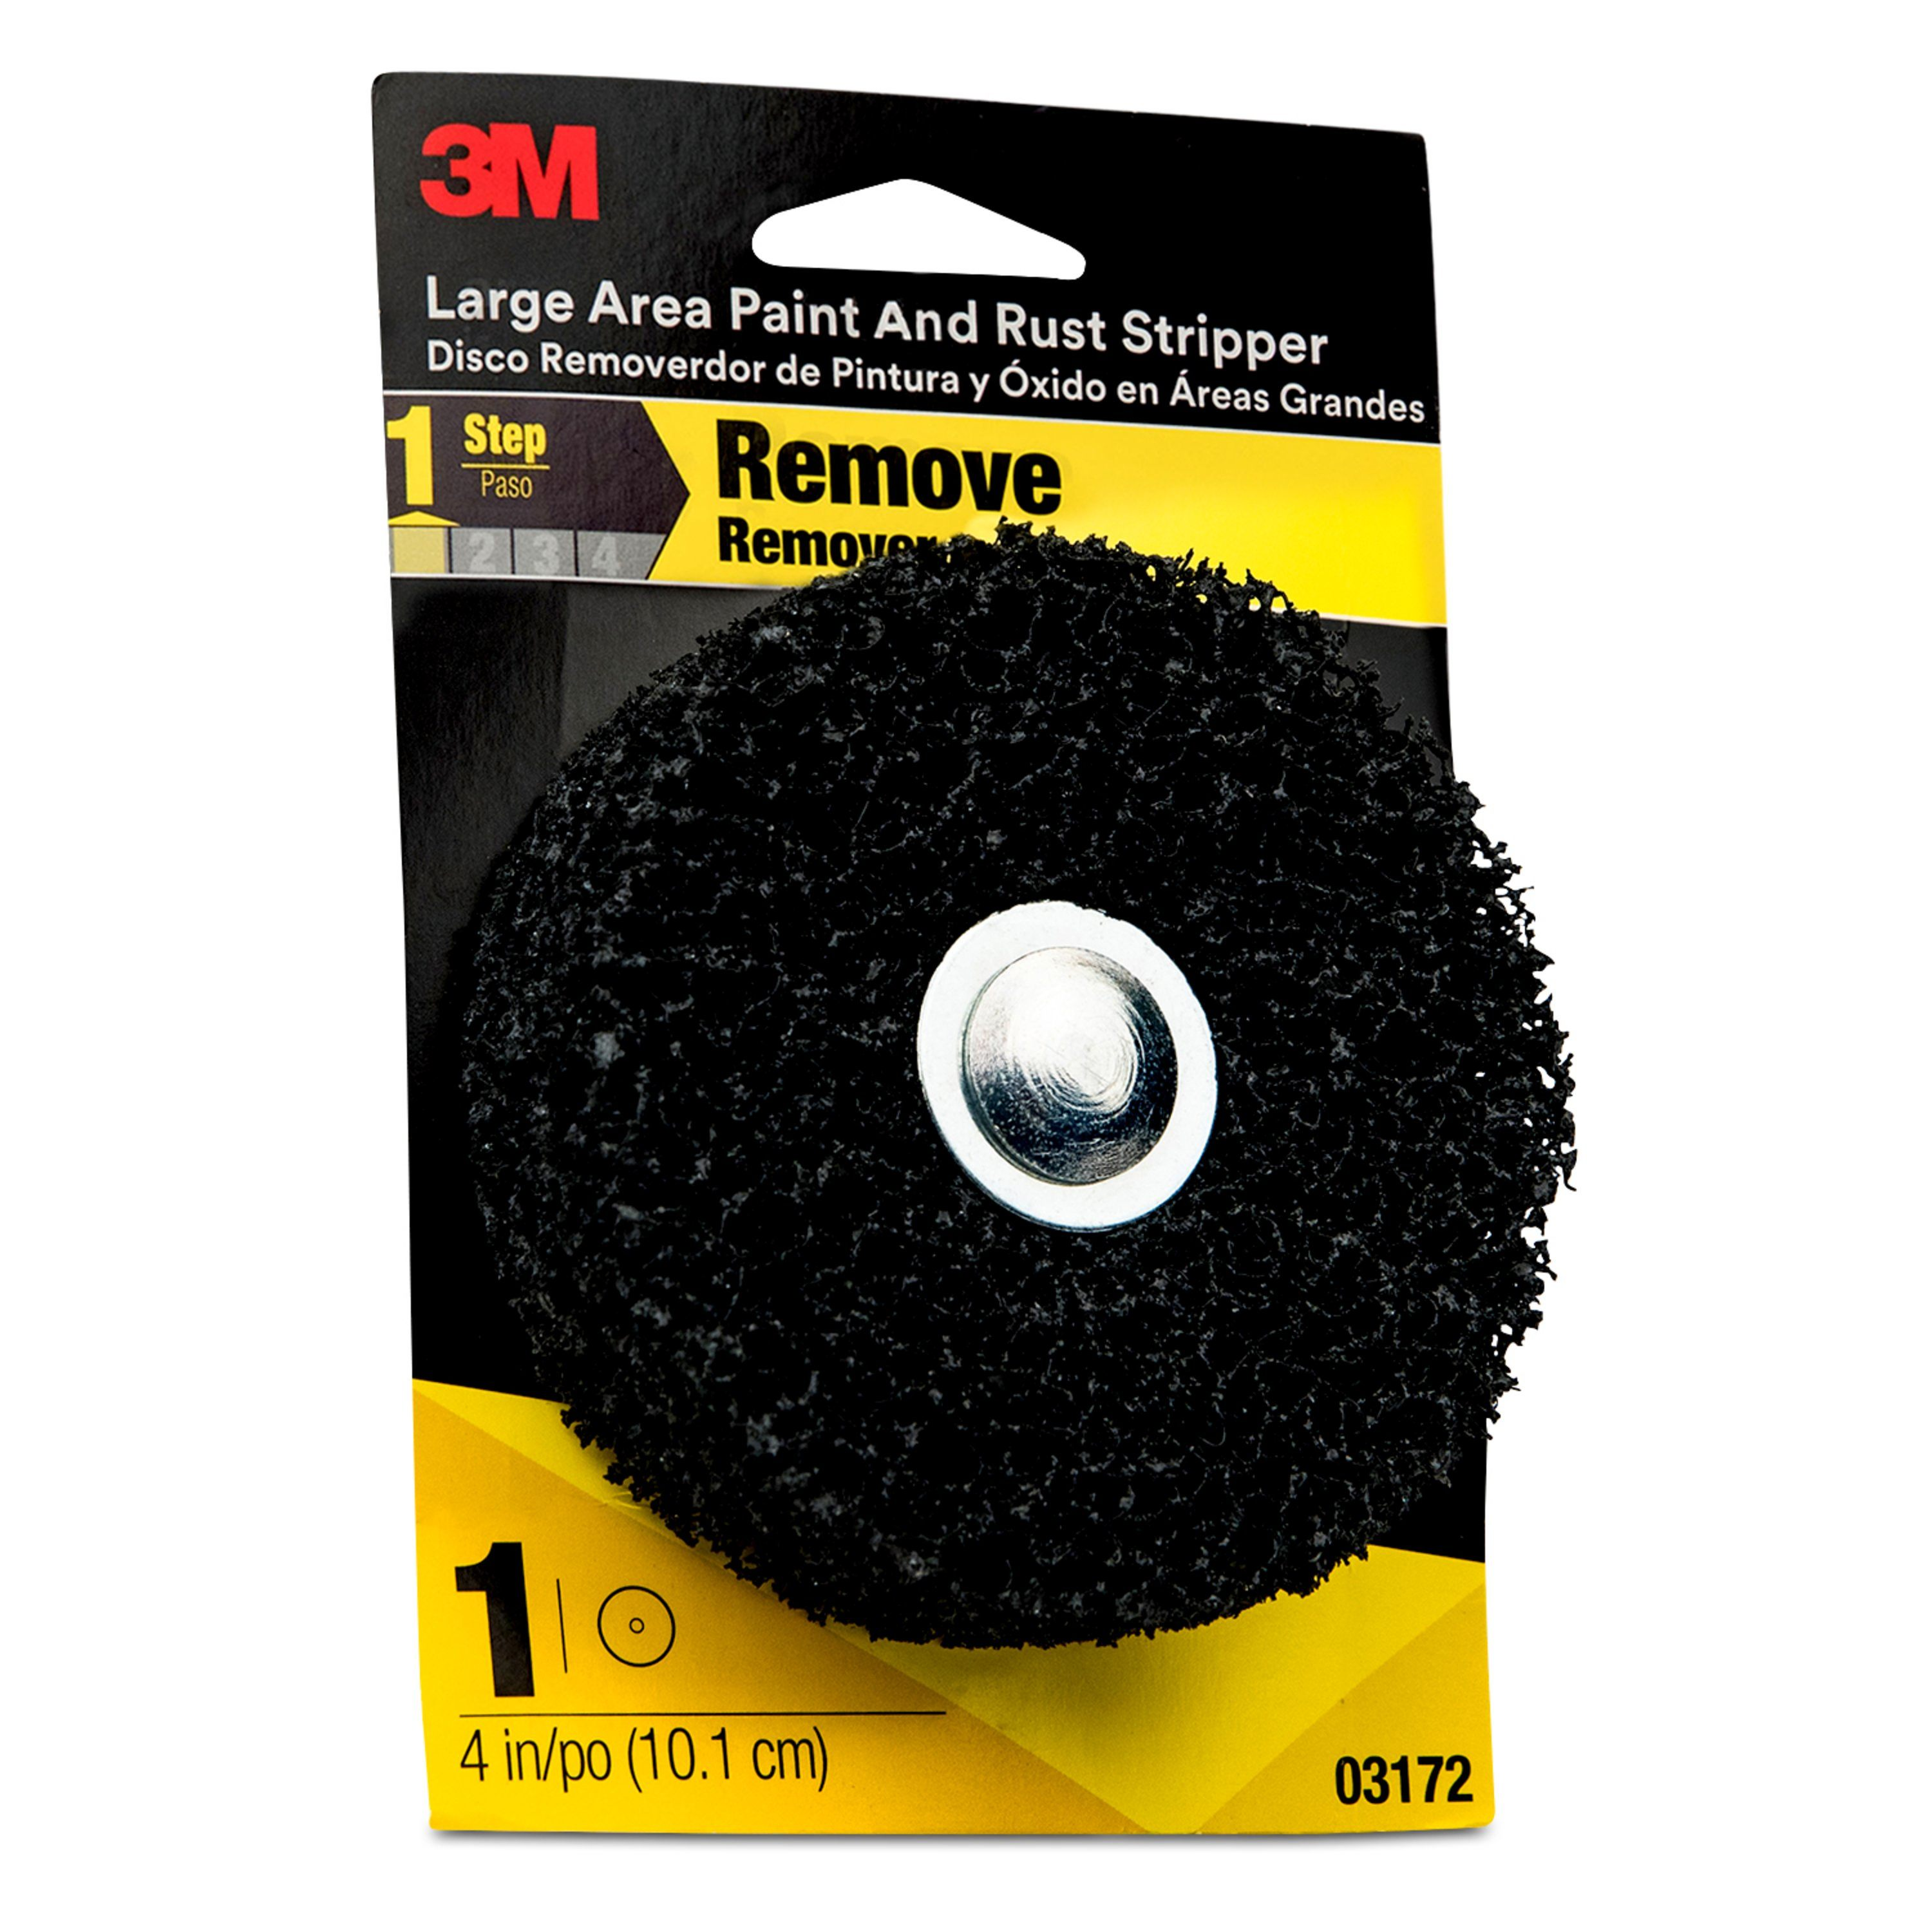 3M Large Area Heavy Duty Paint and Rust Stripper, 03172, 4 inch